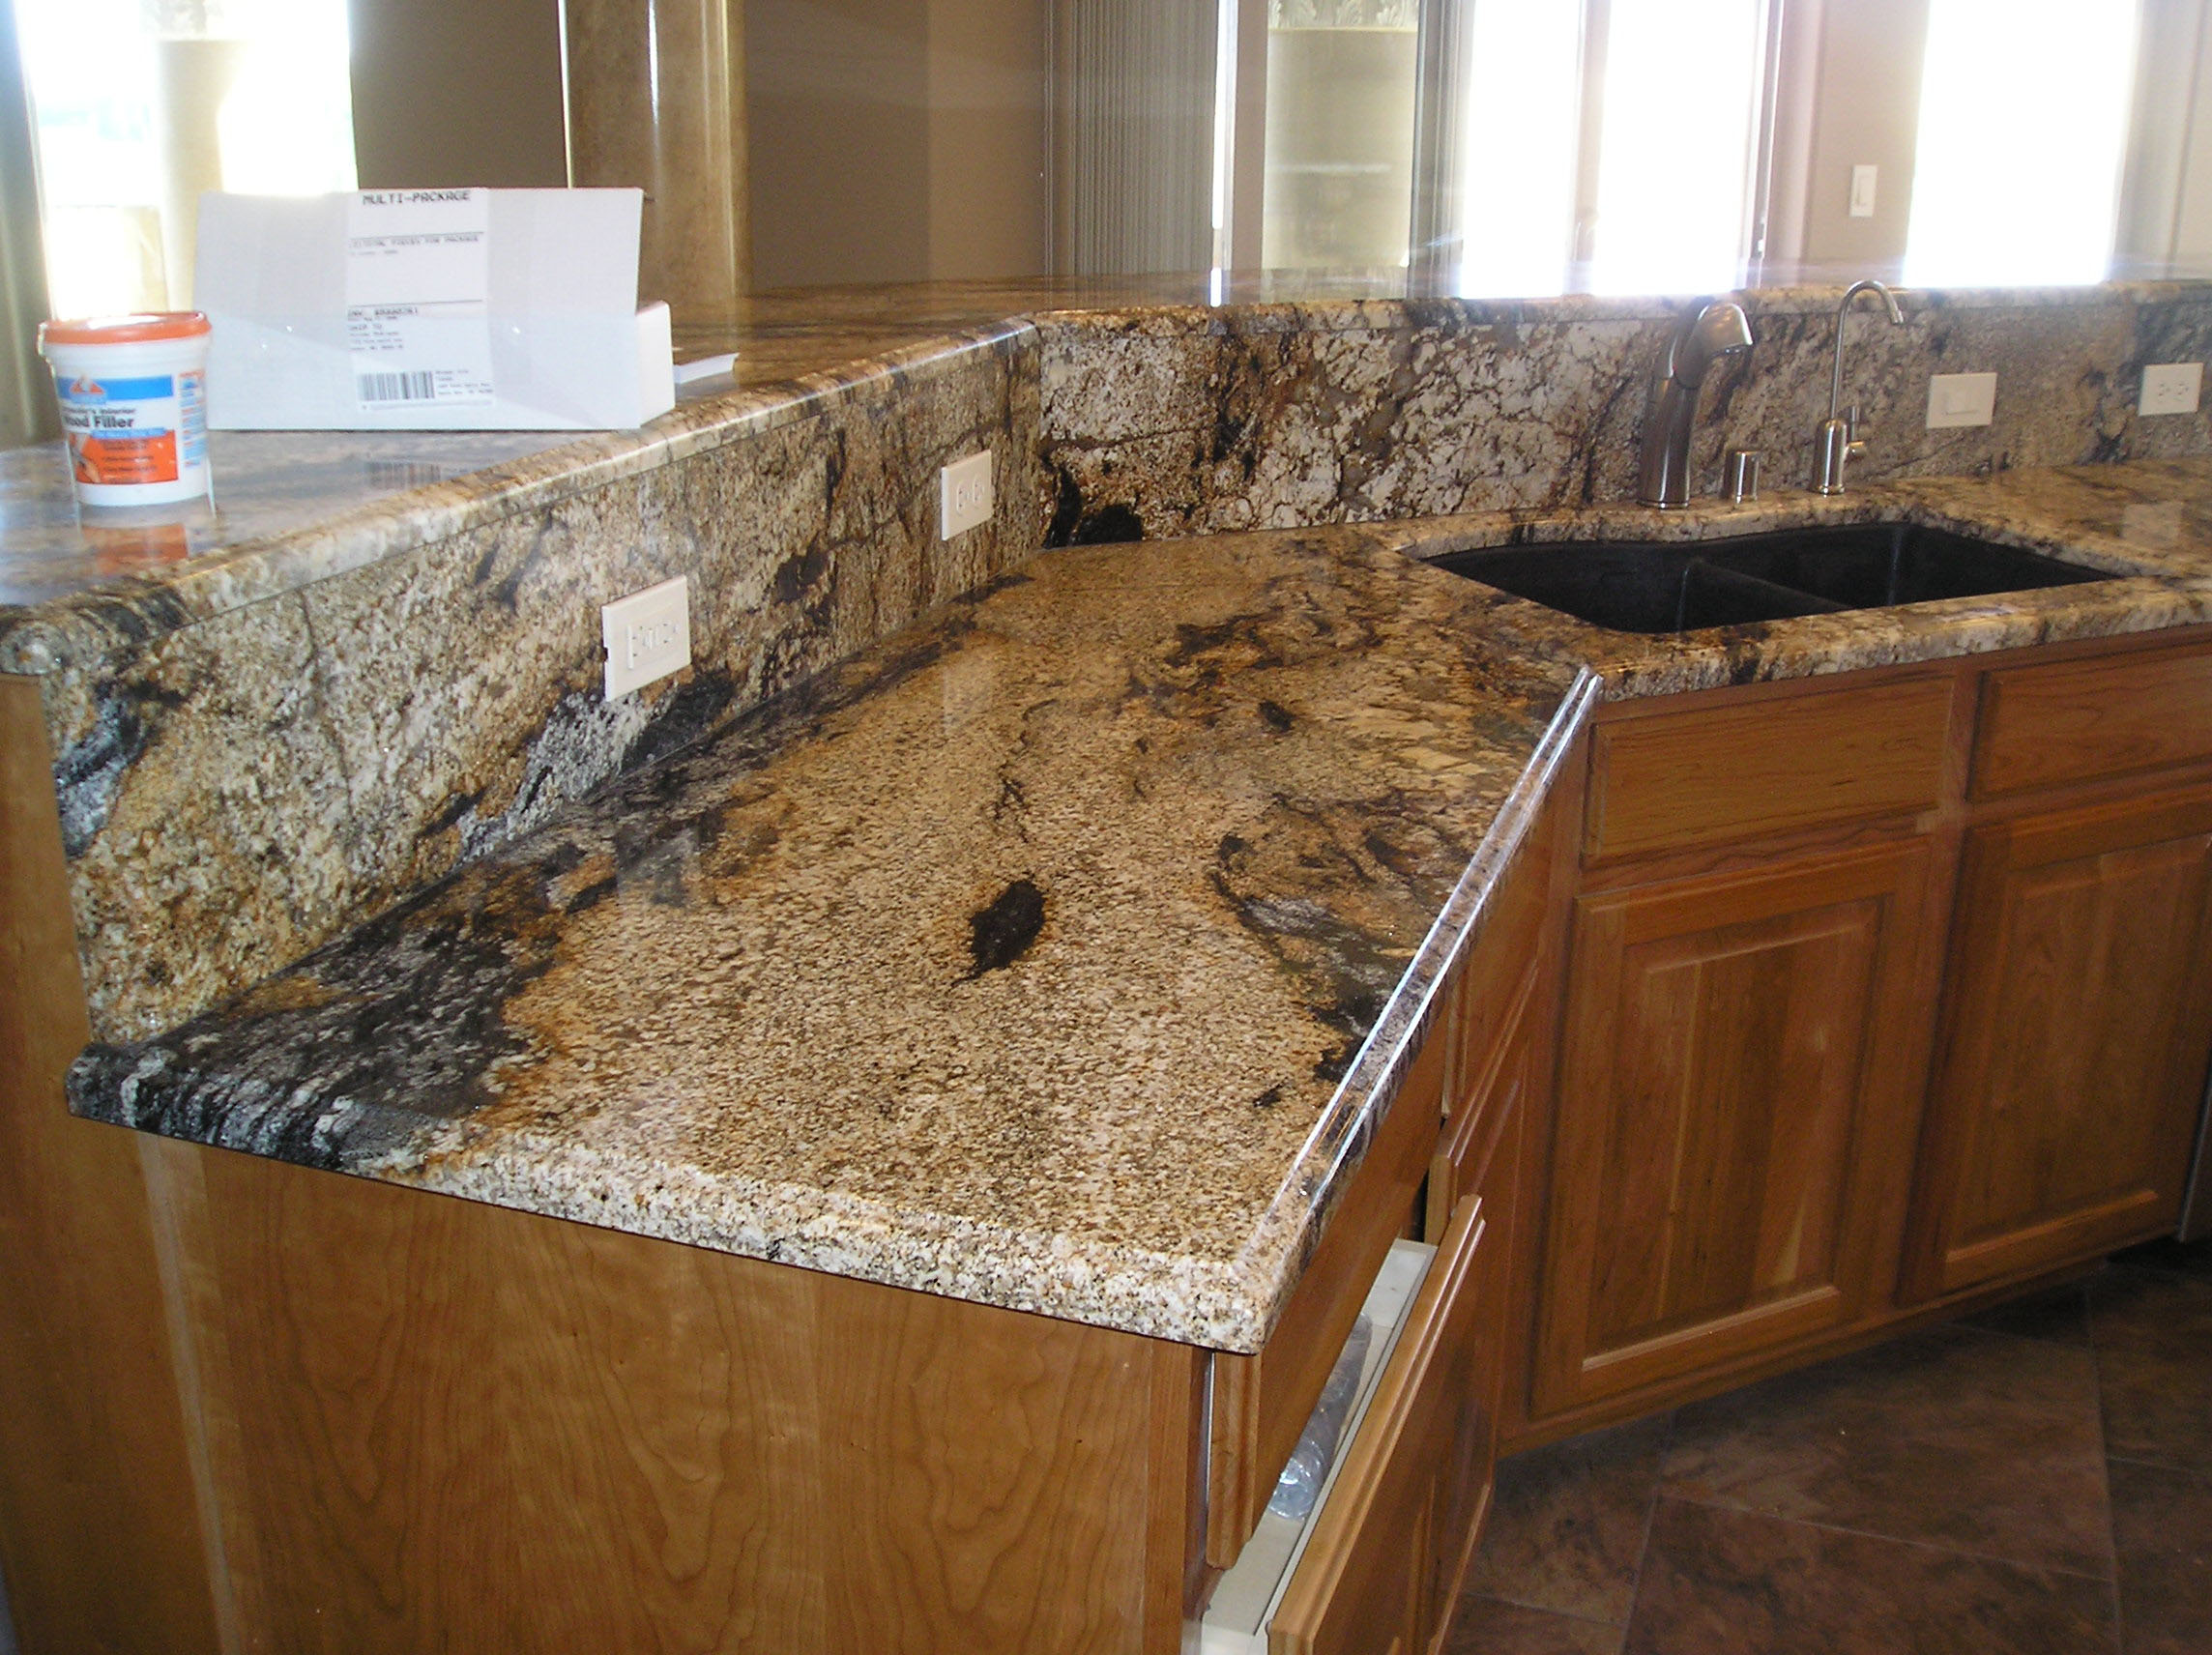 M r stone gallery granite marble kitchen countertops Granite kitchen countertops pictures